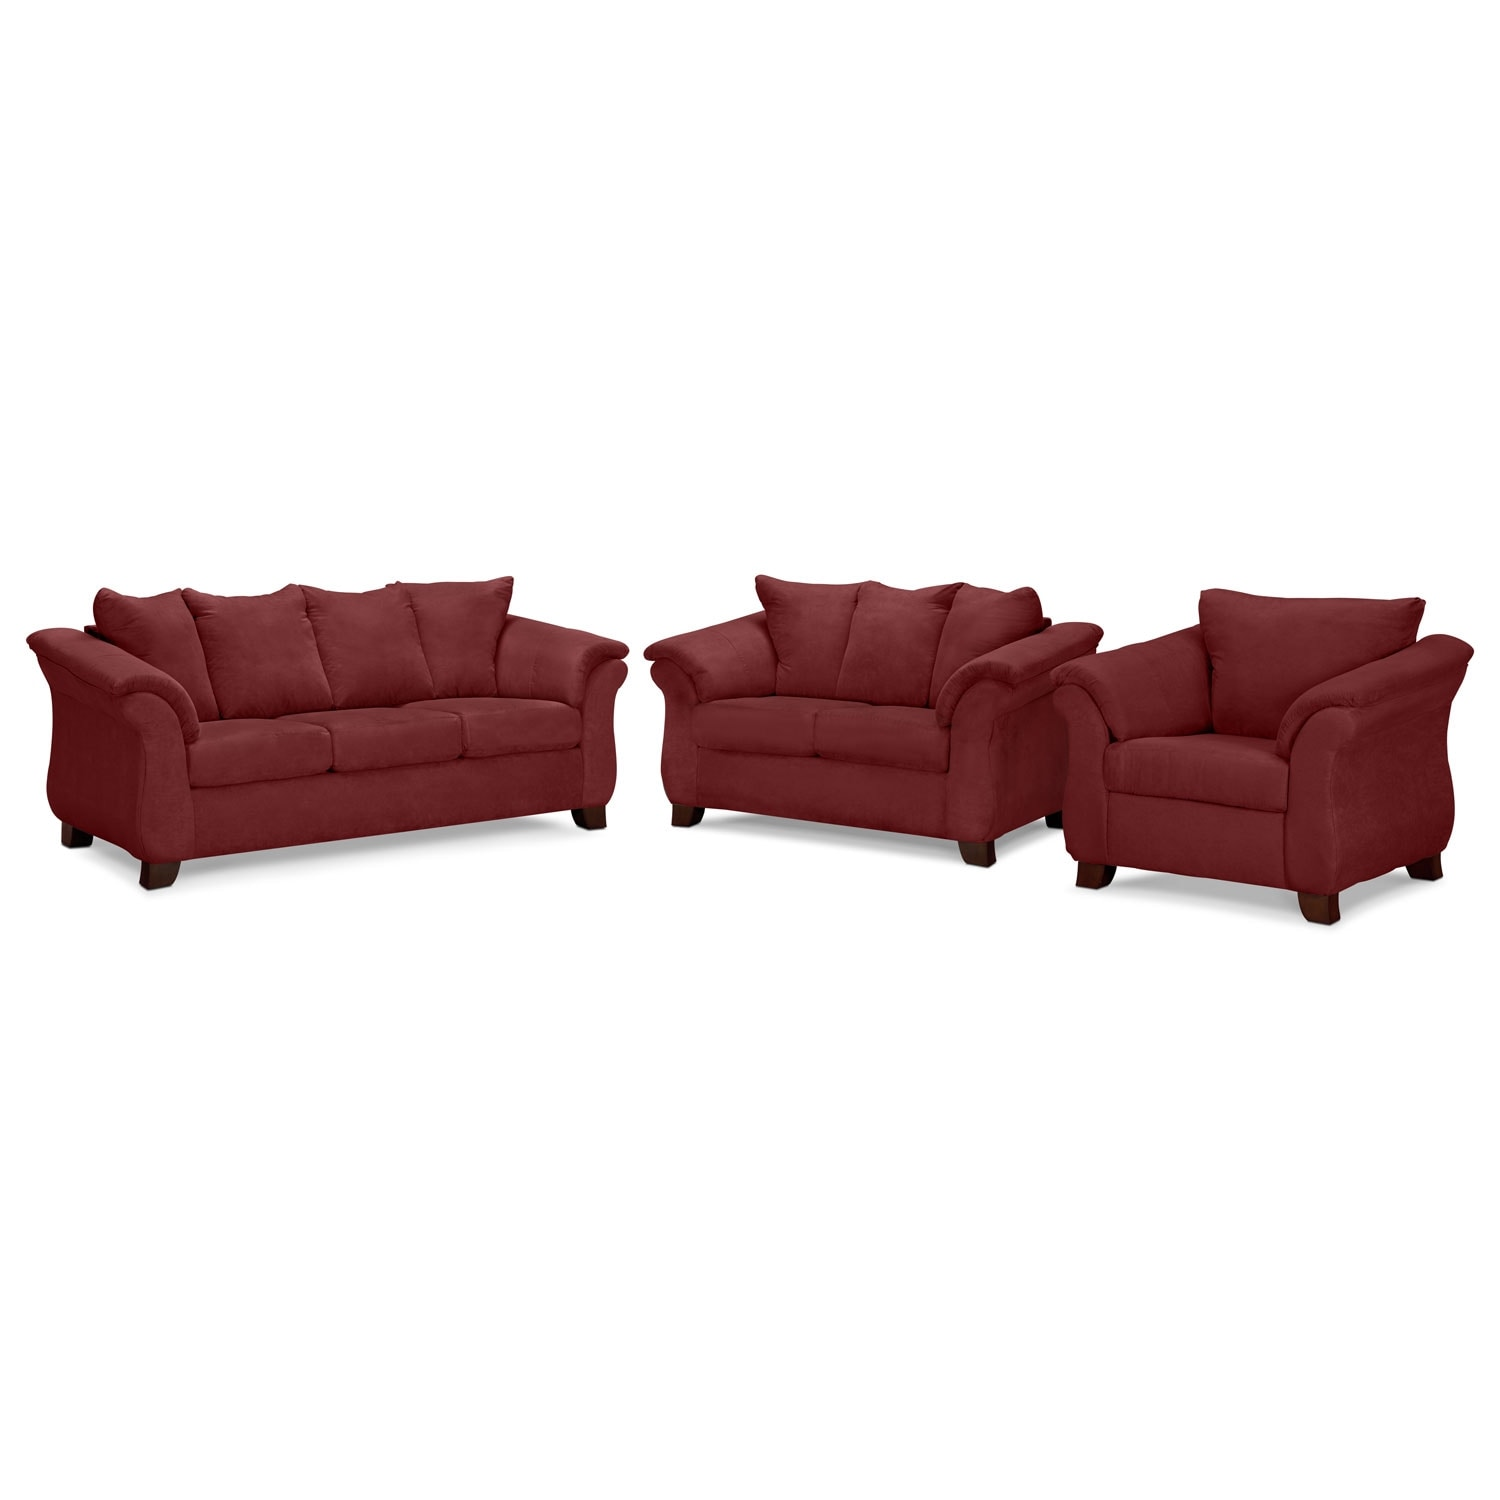 Living Room Furniture - Adrian Red 3 Pc. Living Room